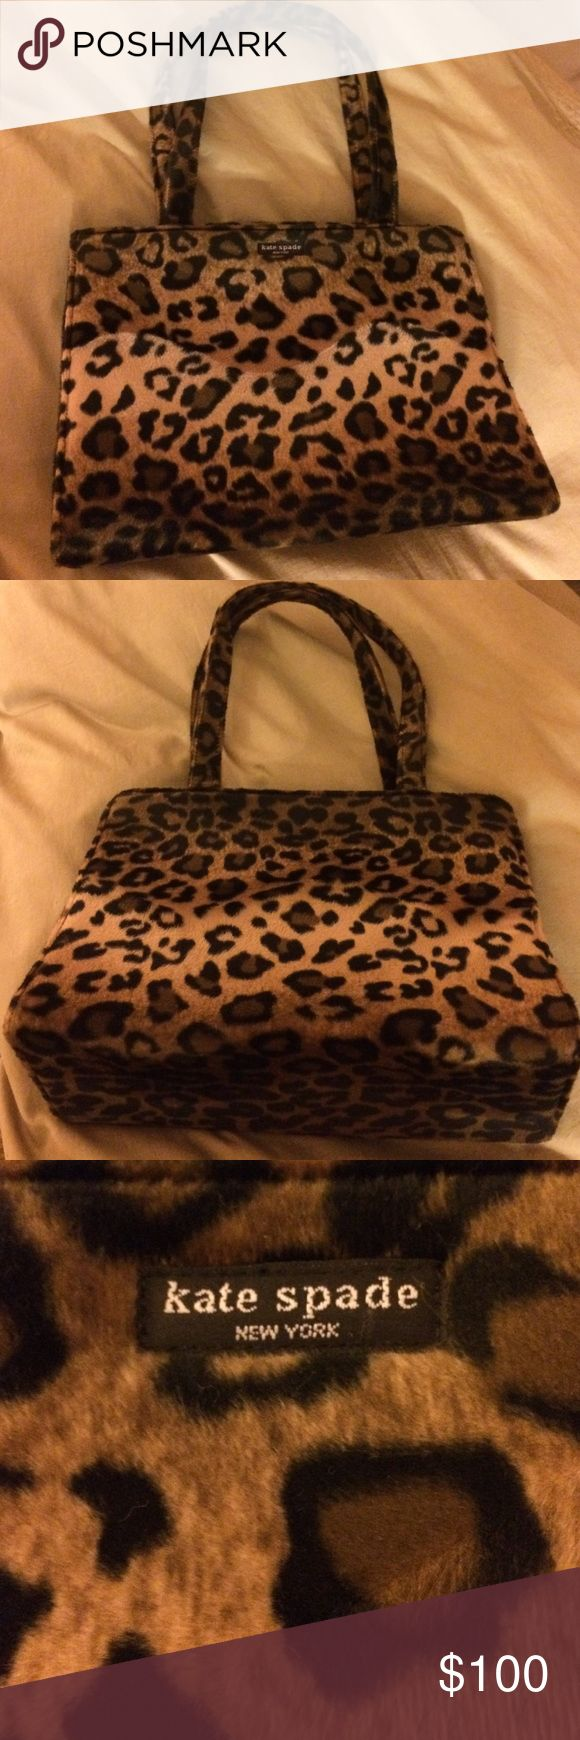 Cute Kate Spade animal print furry bag! Cute animal Kate Spade print bag! kate spade Bags